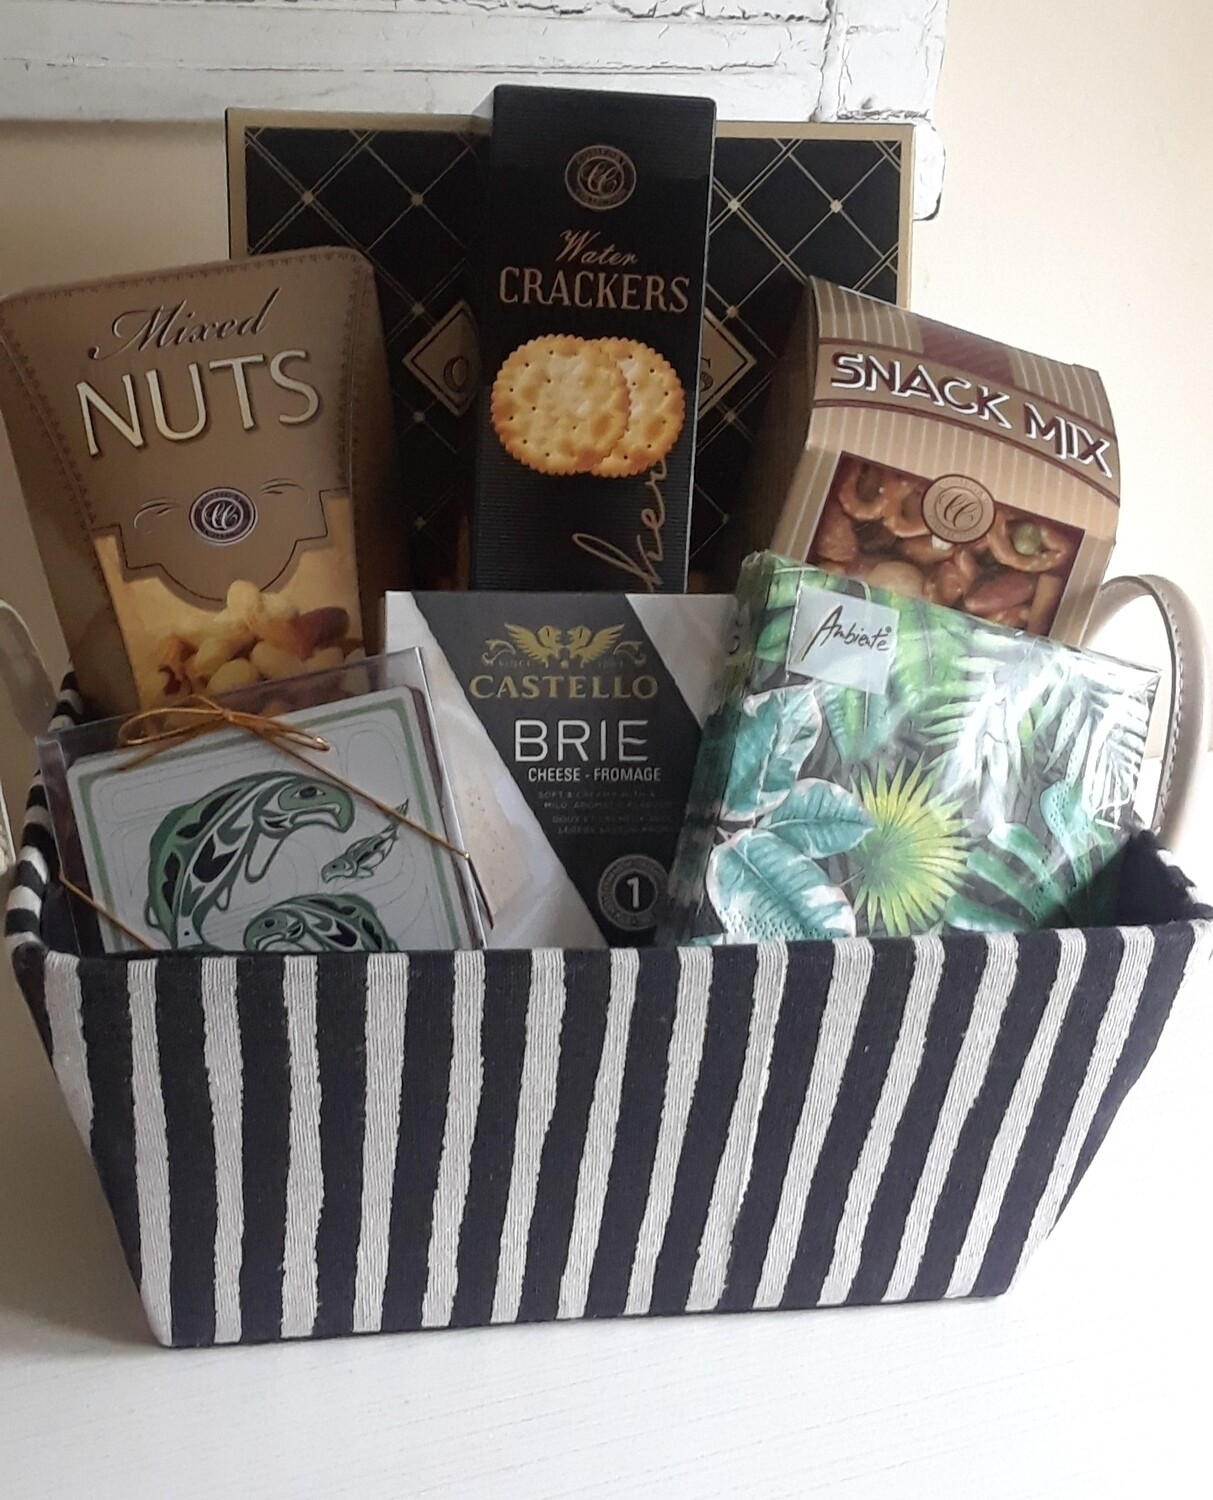 Striped basket with savory goodies